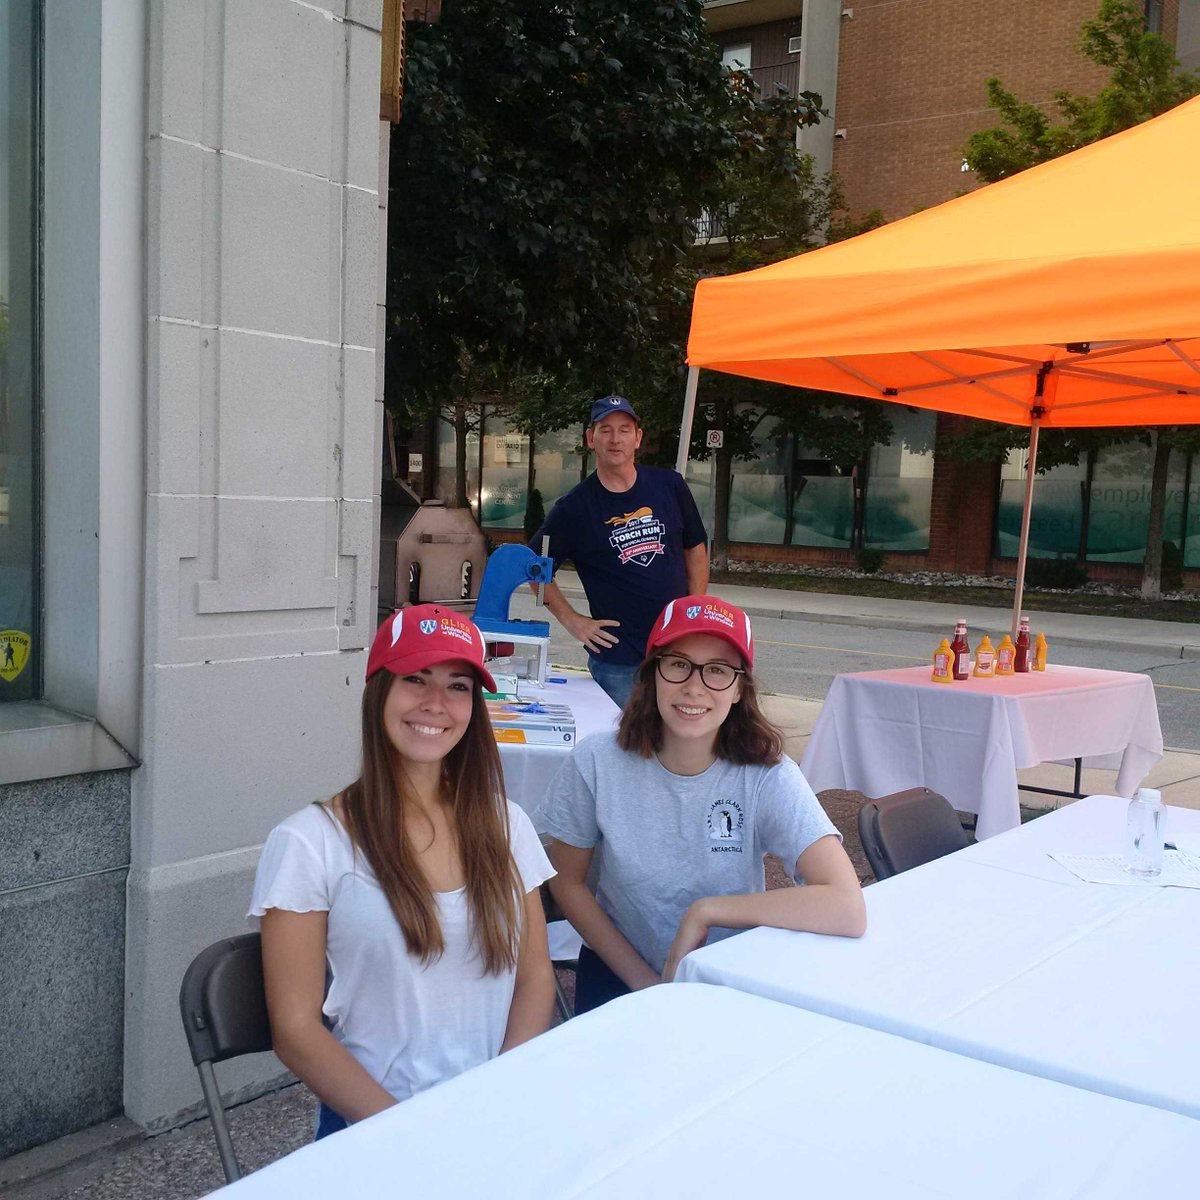 Help test #water,pick up at 1398 Ouellette, drop off right after,10am to noon! Sarah+Alina our scientists will help! <br>http://pic.twitter.com/eJ3RkGZ1CT